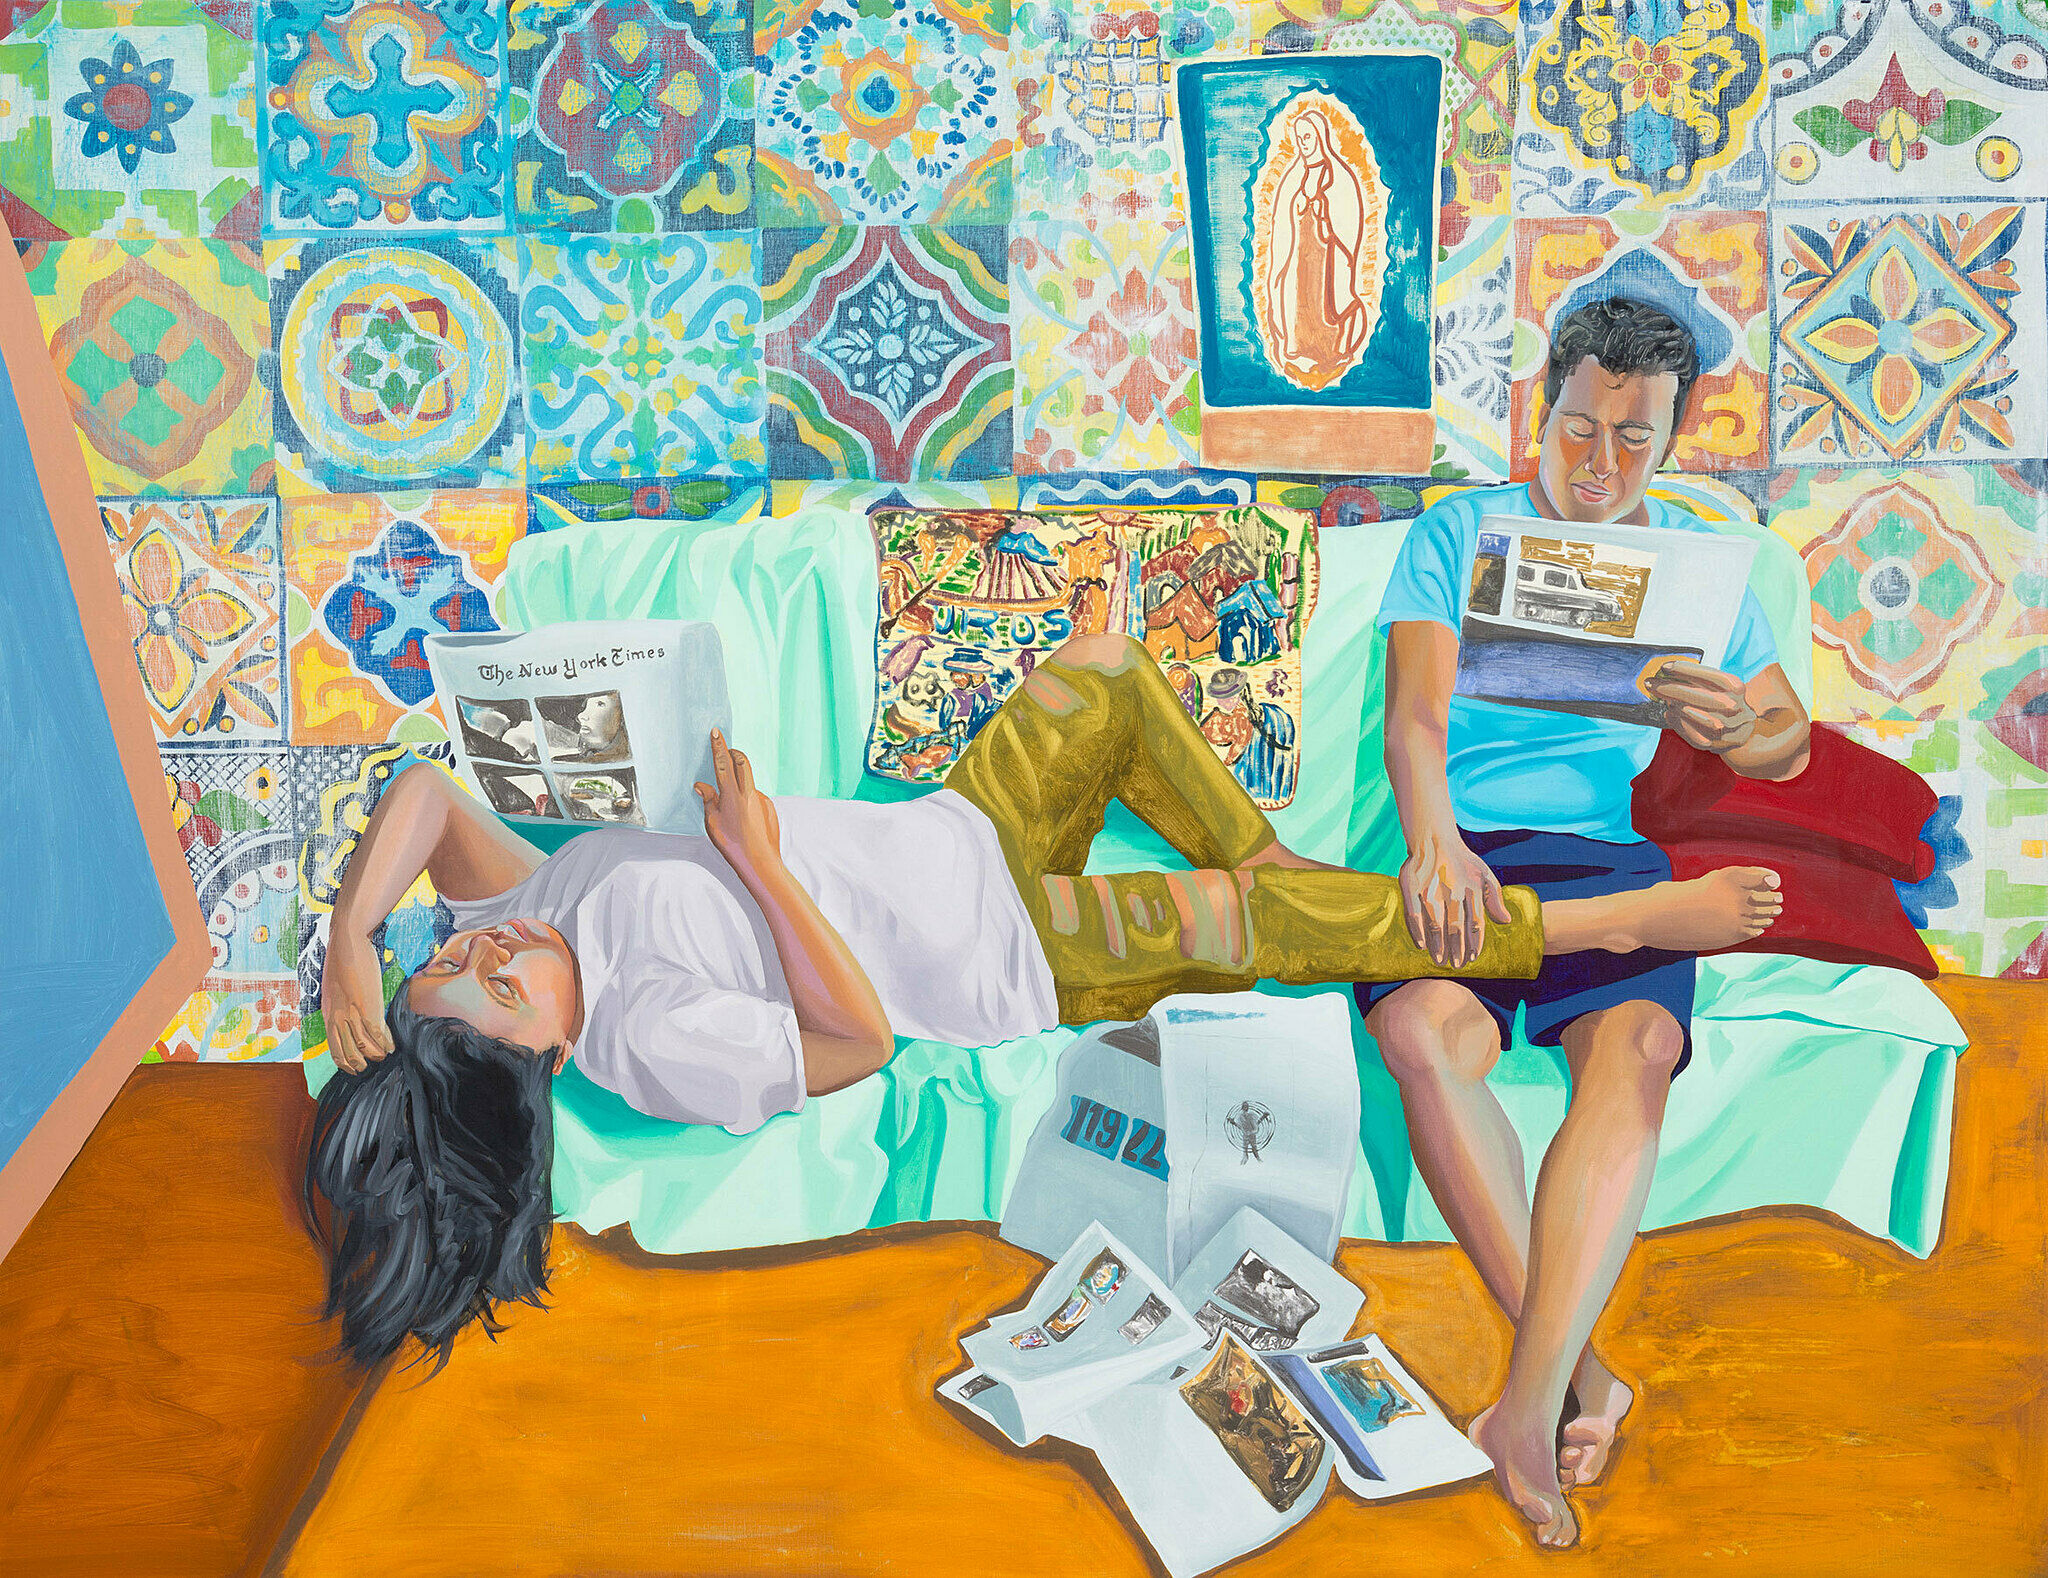 A painting of two people lounging on a couch and reading the newspaper with a colorfully patterned background.